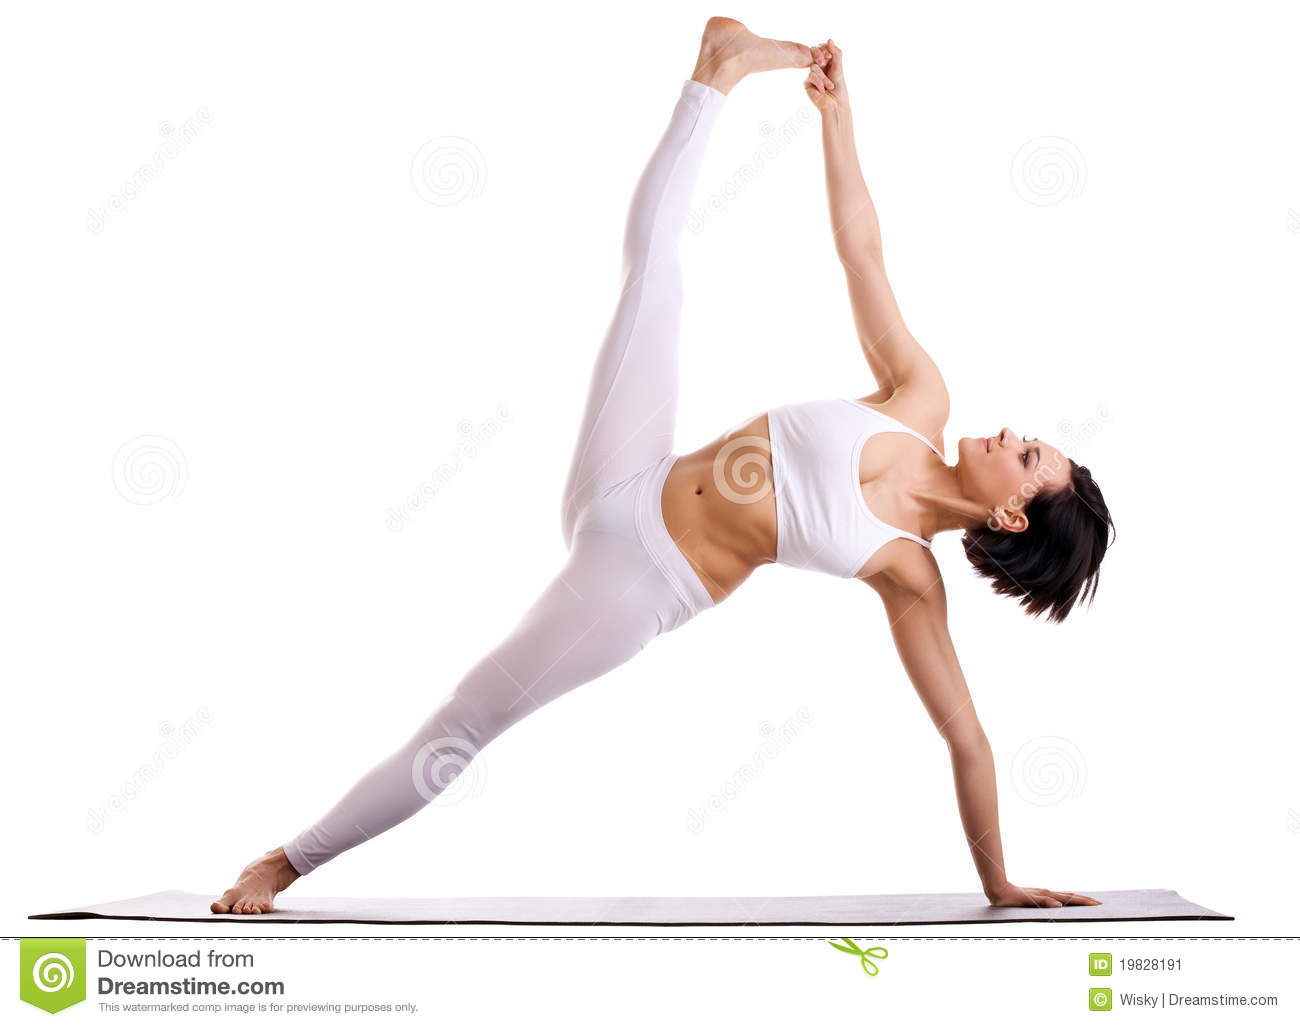 Woman In Yoga Asana - Side Plank Pose Stock Image - Image ...